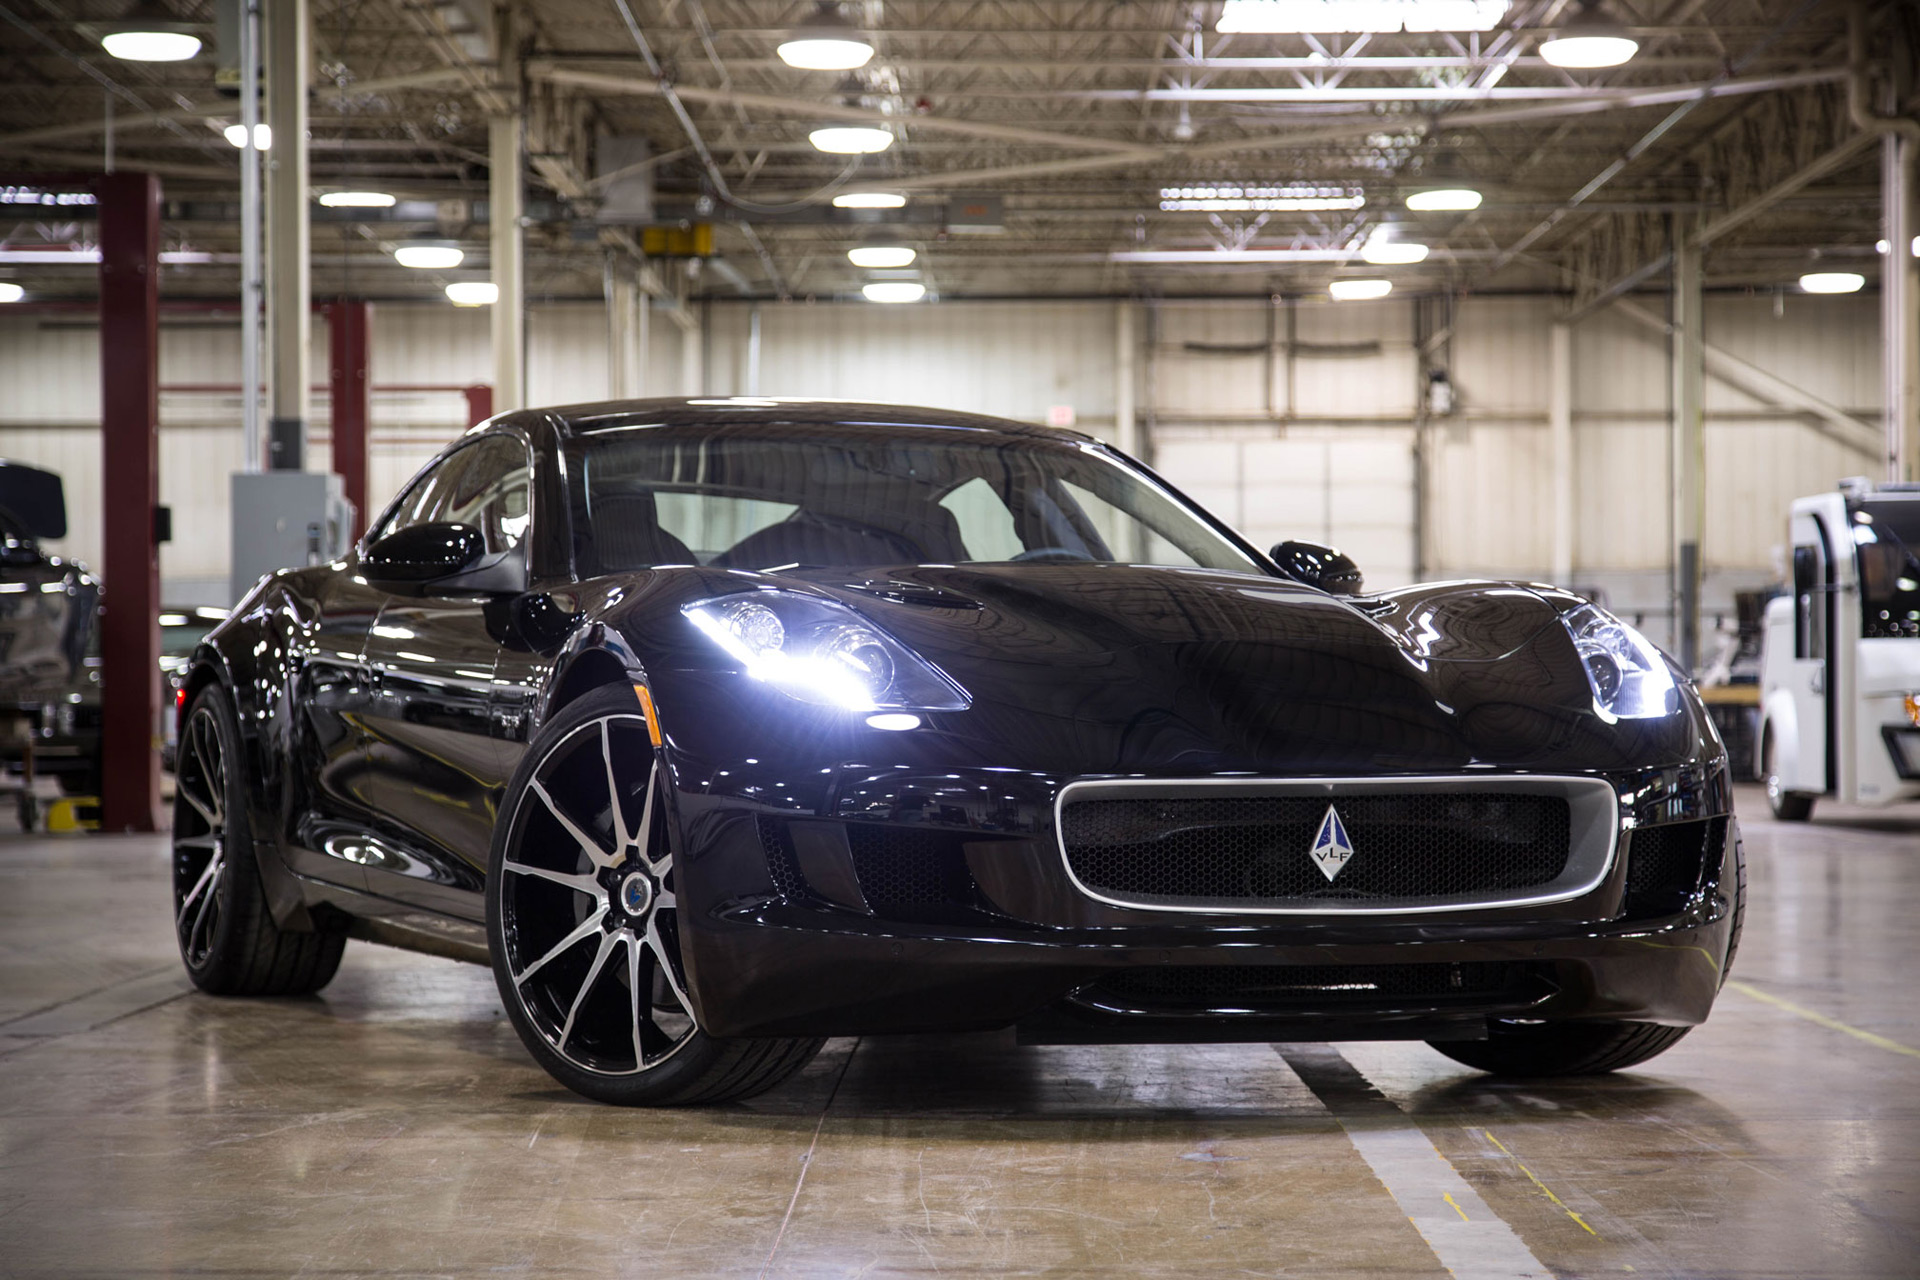 2018 Karma Revero First Drive Review  motortrendcom